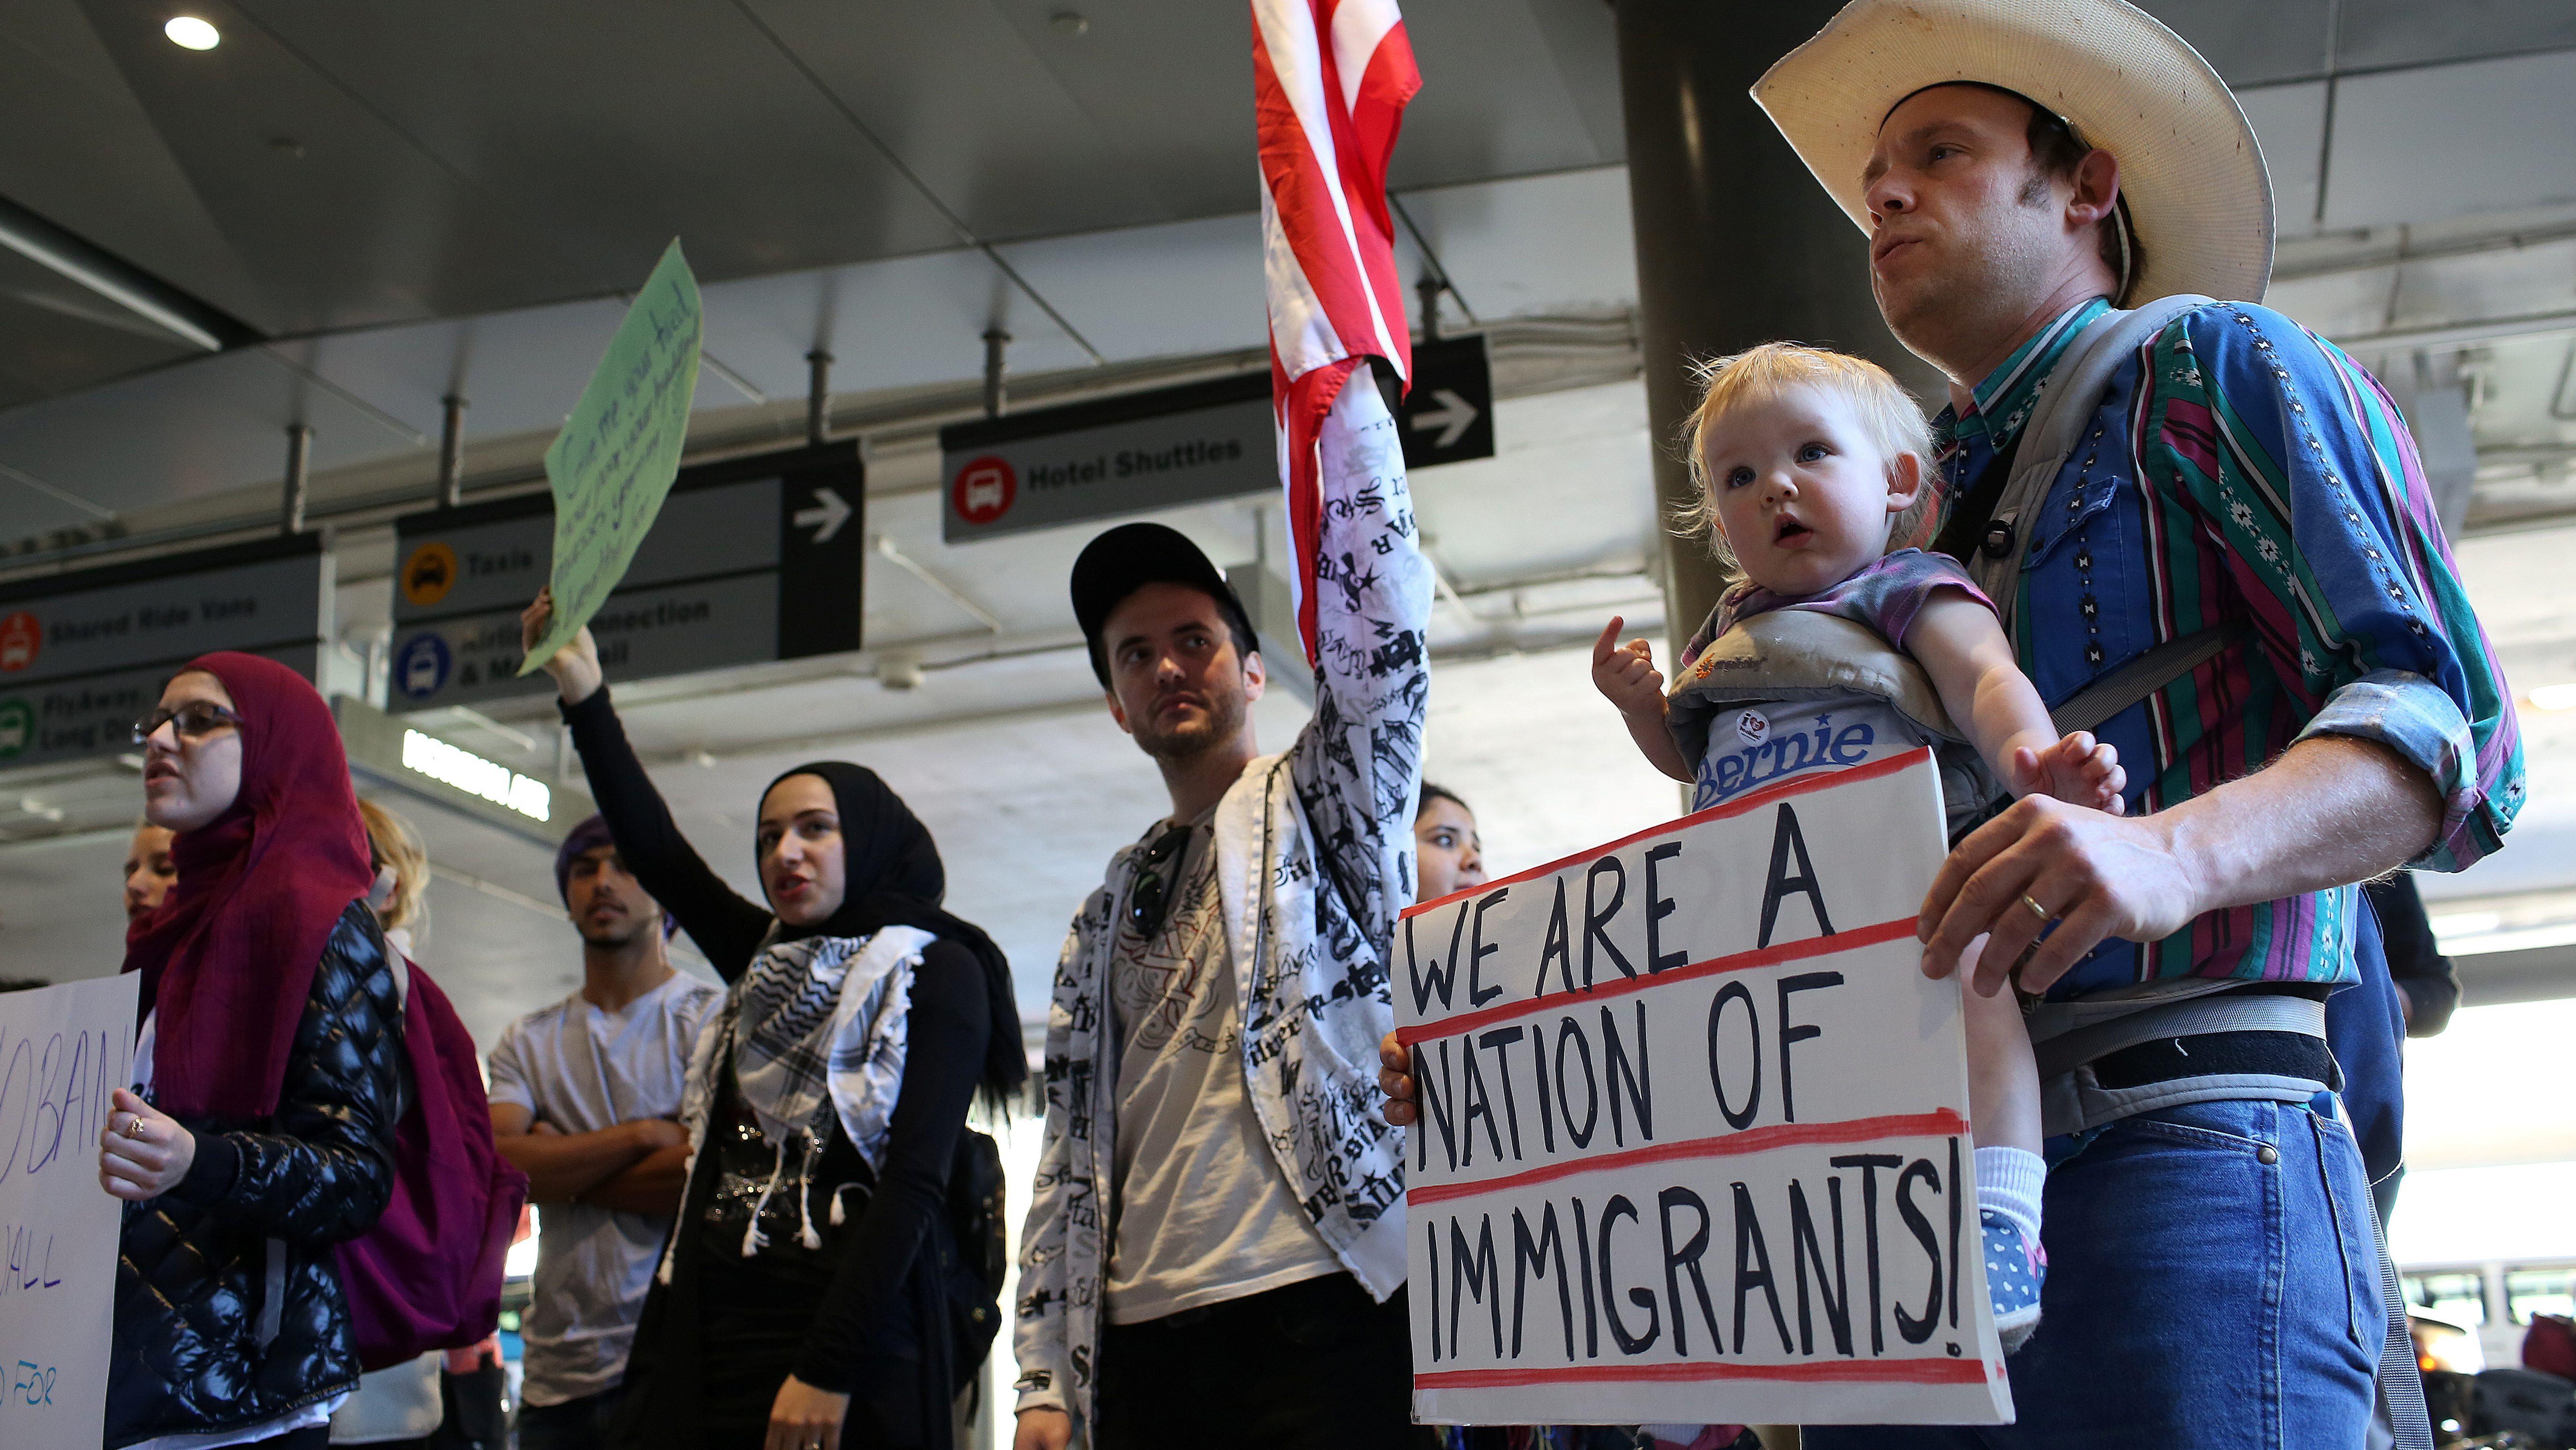 People gather to protest against U.S. President Donald Trump's executive order travel ban at Los Angeles International Airport (LAX), California, U.S. January 31, 2017. REUTERS/Monica Almeida - RTX2Z2ZH